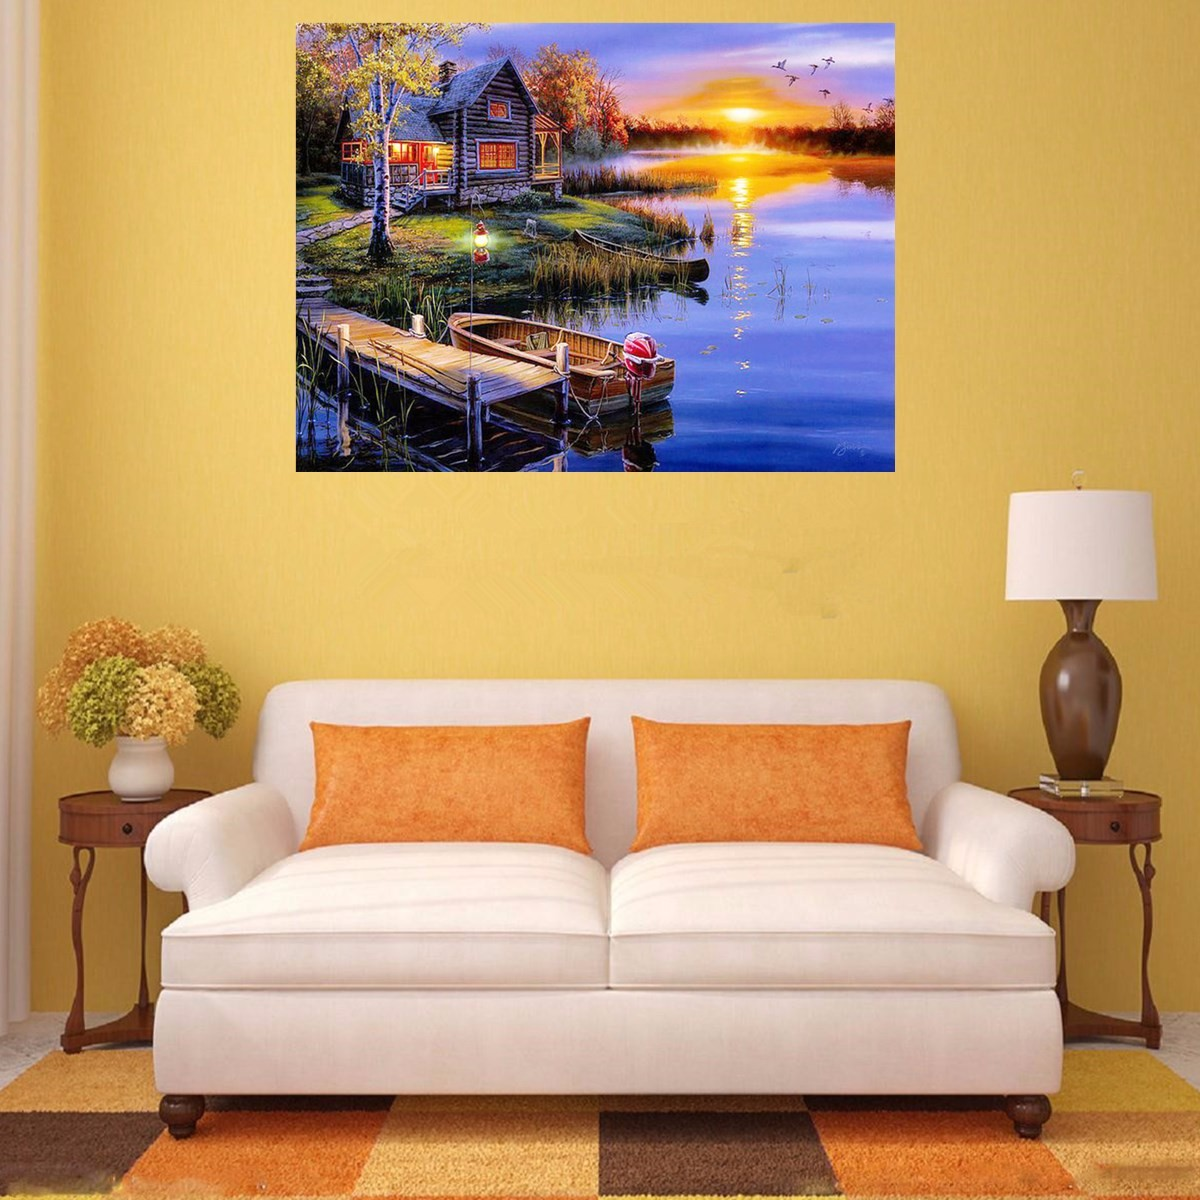 5D Diamond Painting DIY Lake&House Landscape Cross Stitch Home Decor